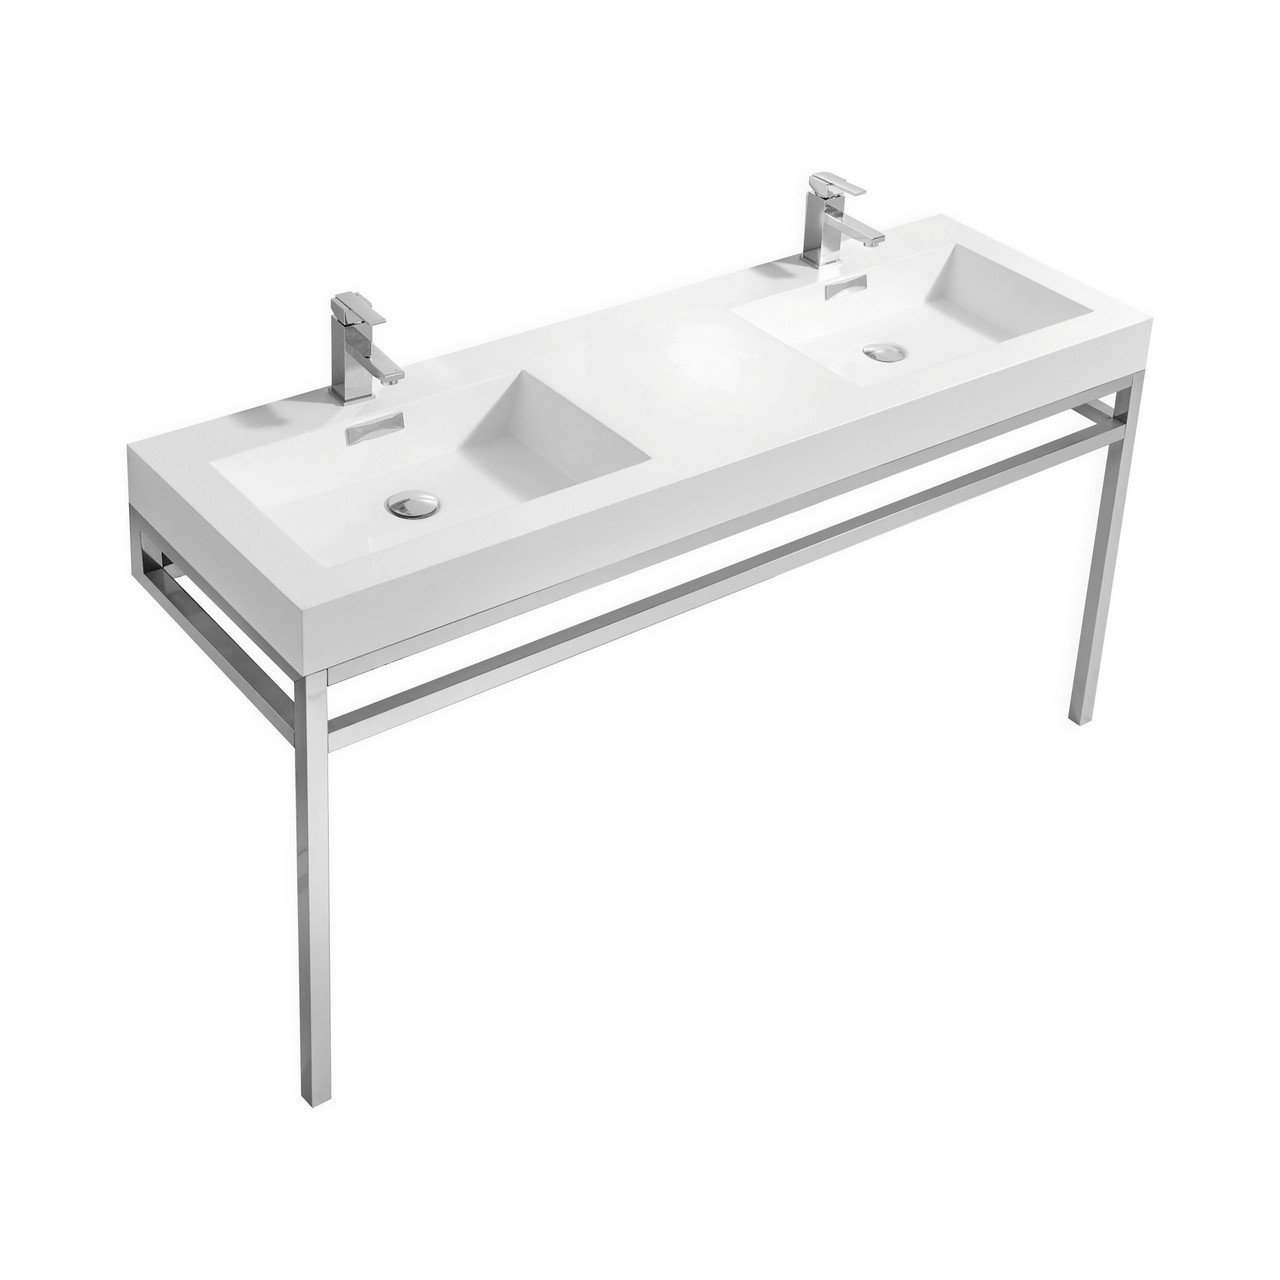 """Modern Lux 60"""" Double Sink Stainless Steel Console w/ White Acrylic Sink - Chrome"""